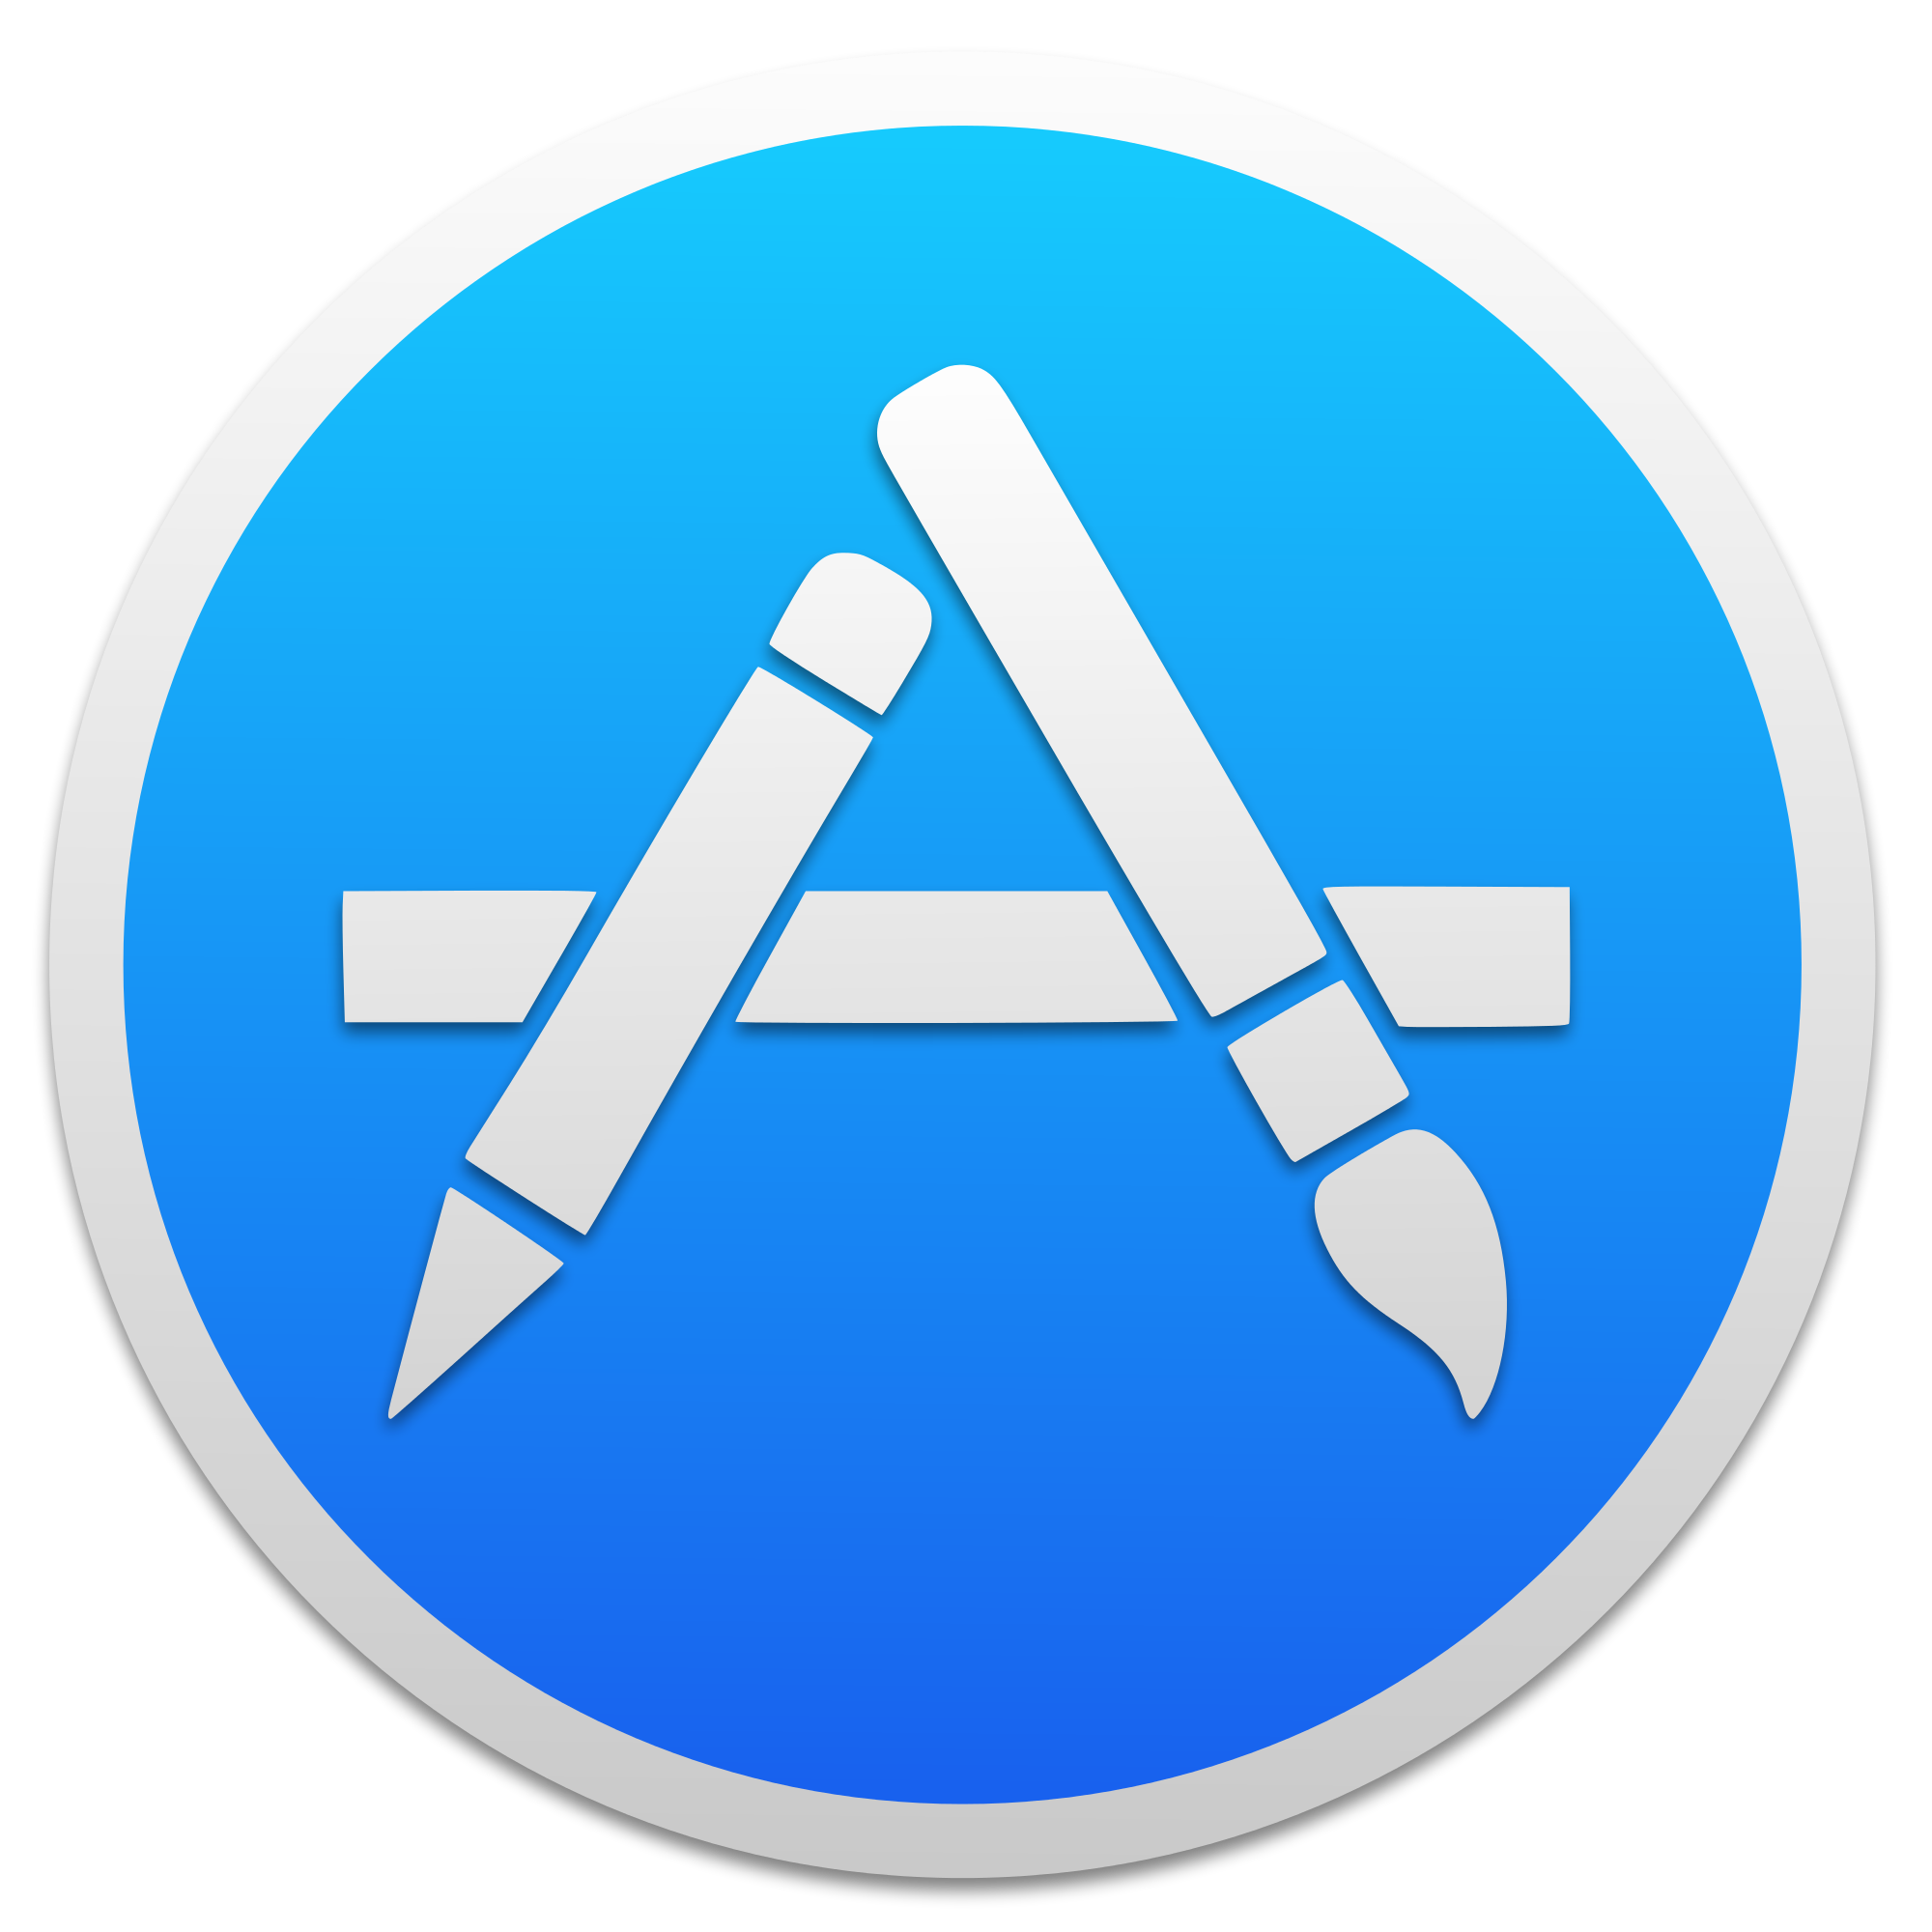 App_Store_OS_X.svg